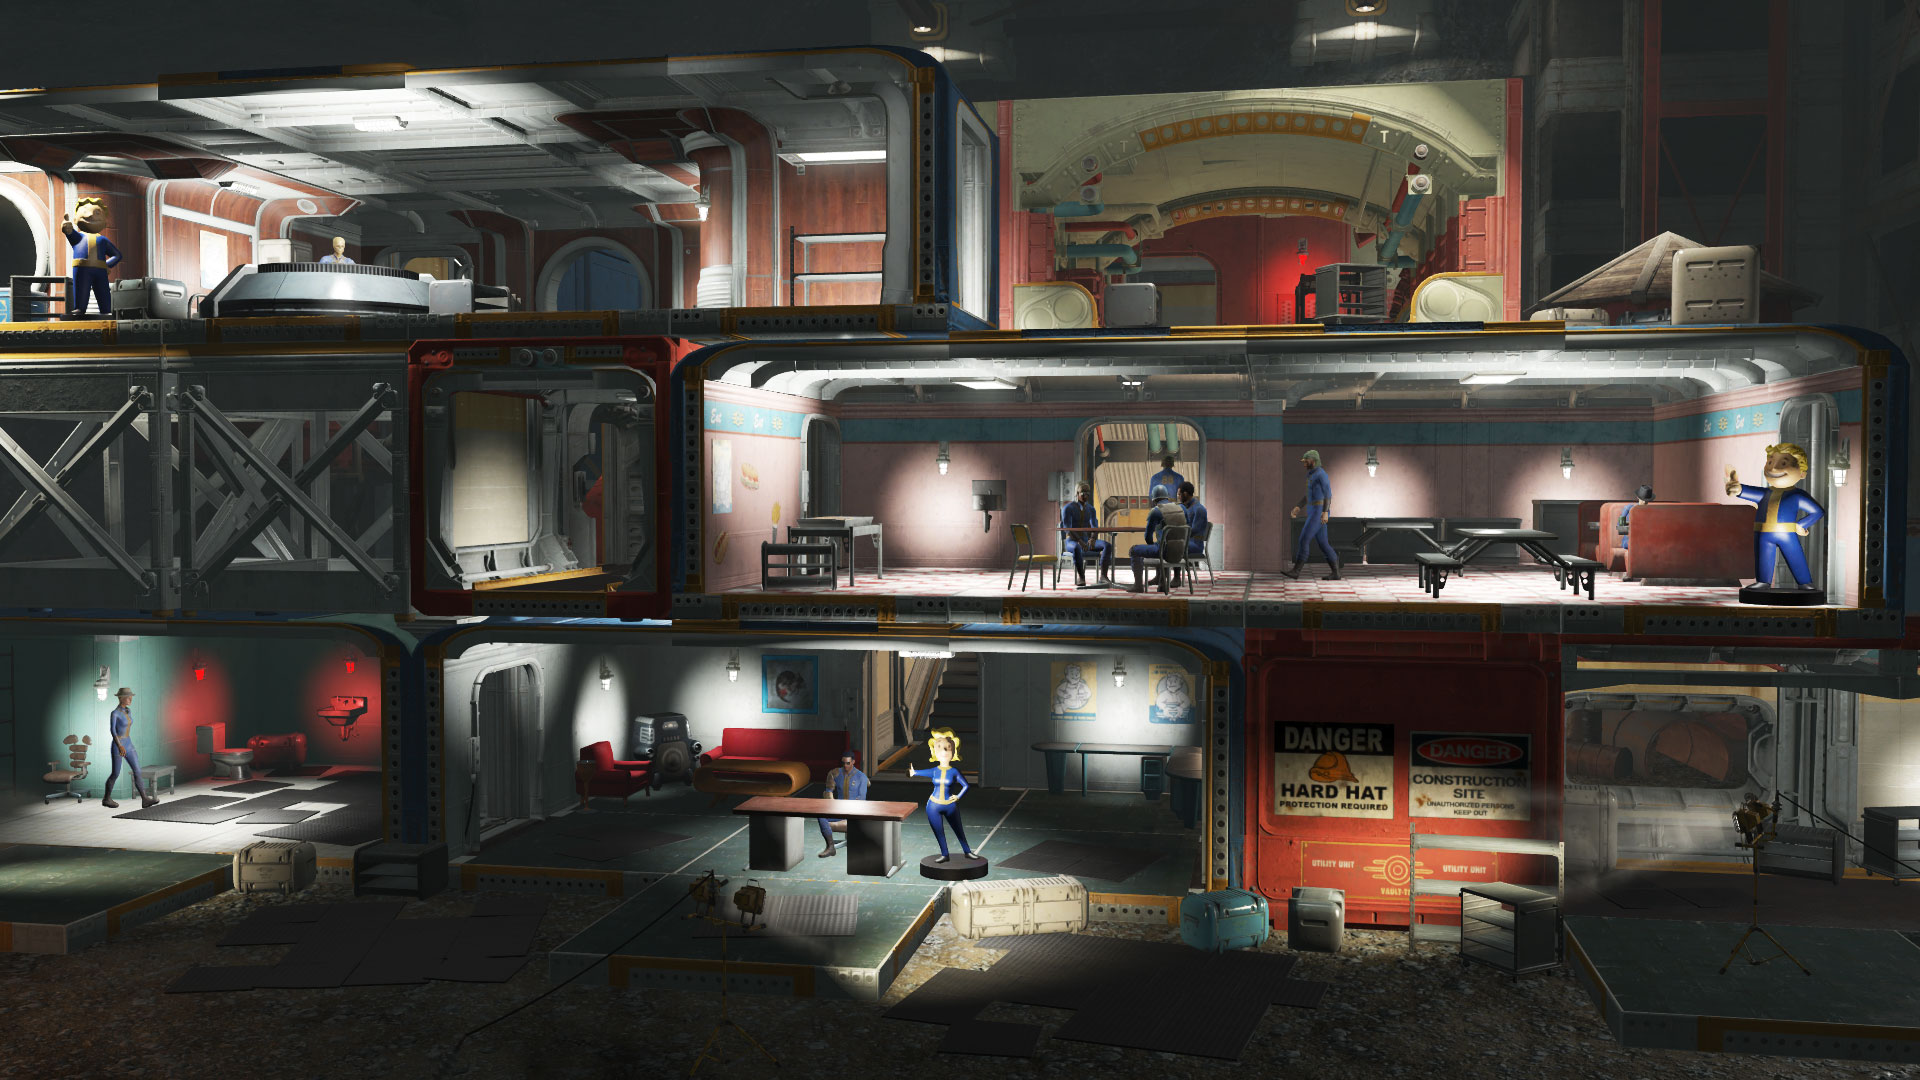 Fallout 4 Nuka World DLC Lets Players Lead Lethal Gangs Of Raiders In August VG247